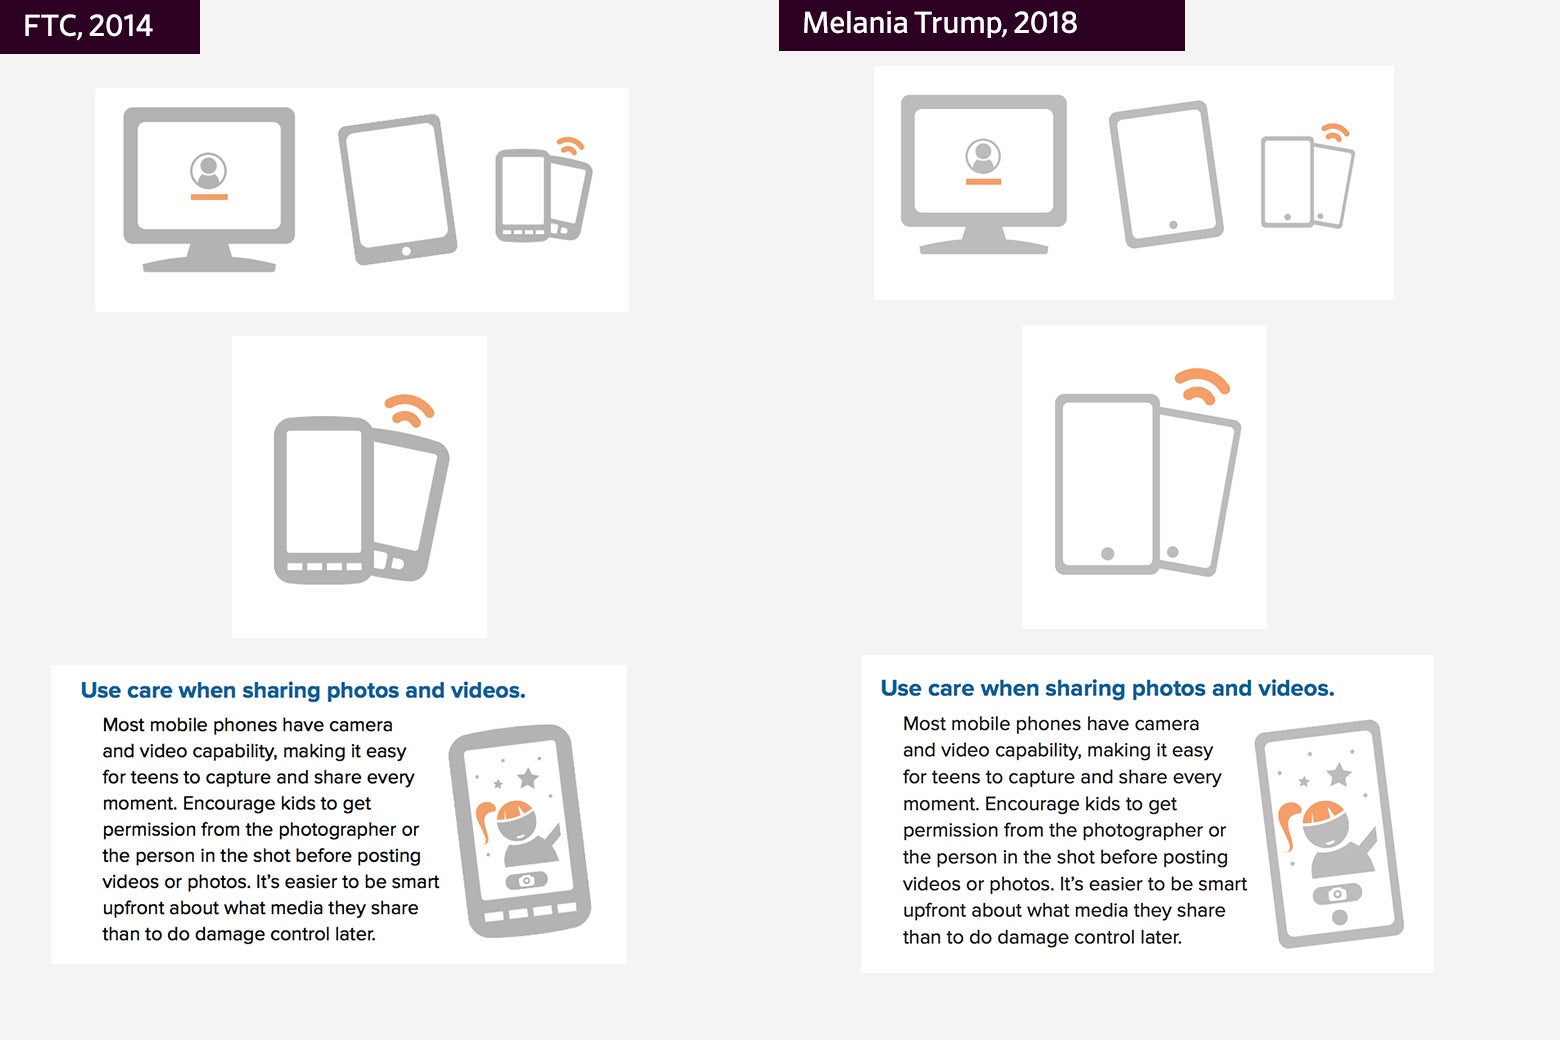 Side-by-side booklet pages that are identical but for small graphical changes to images of cell phones.